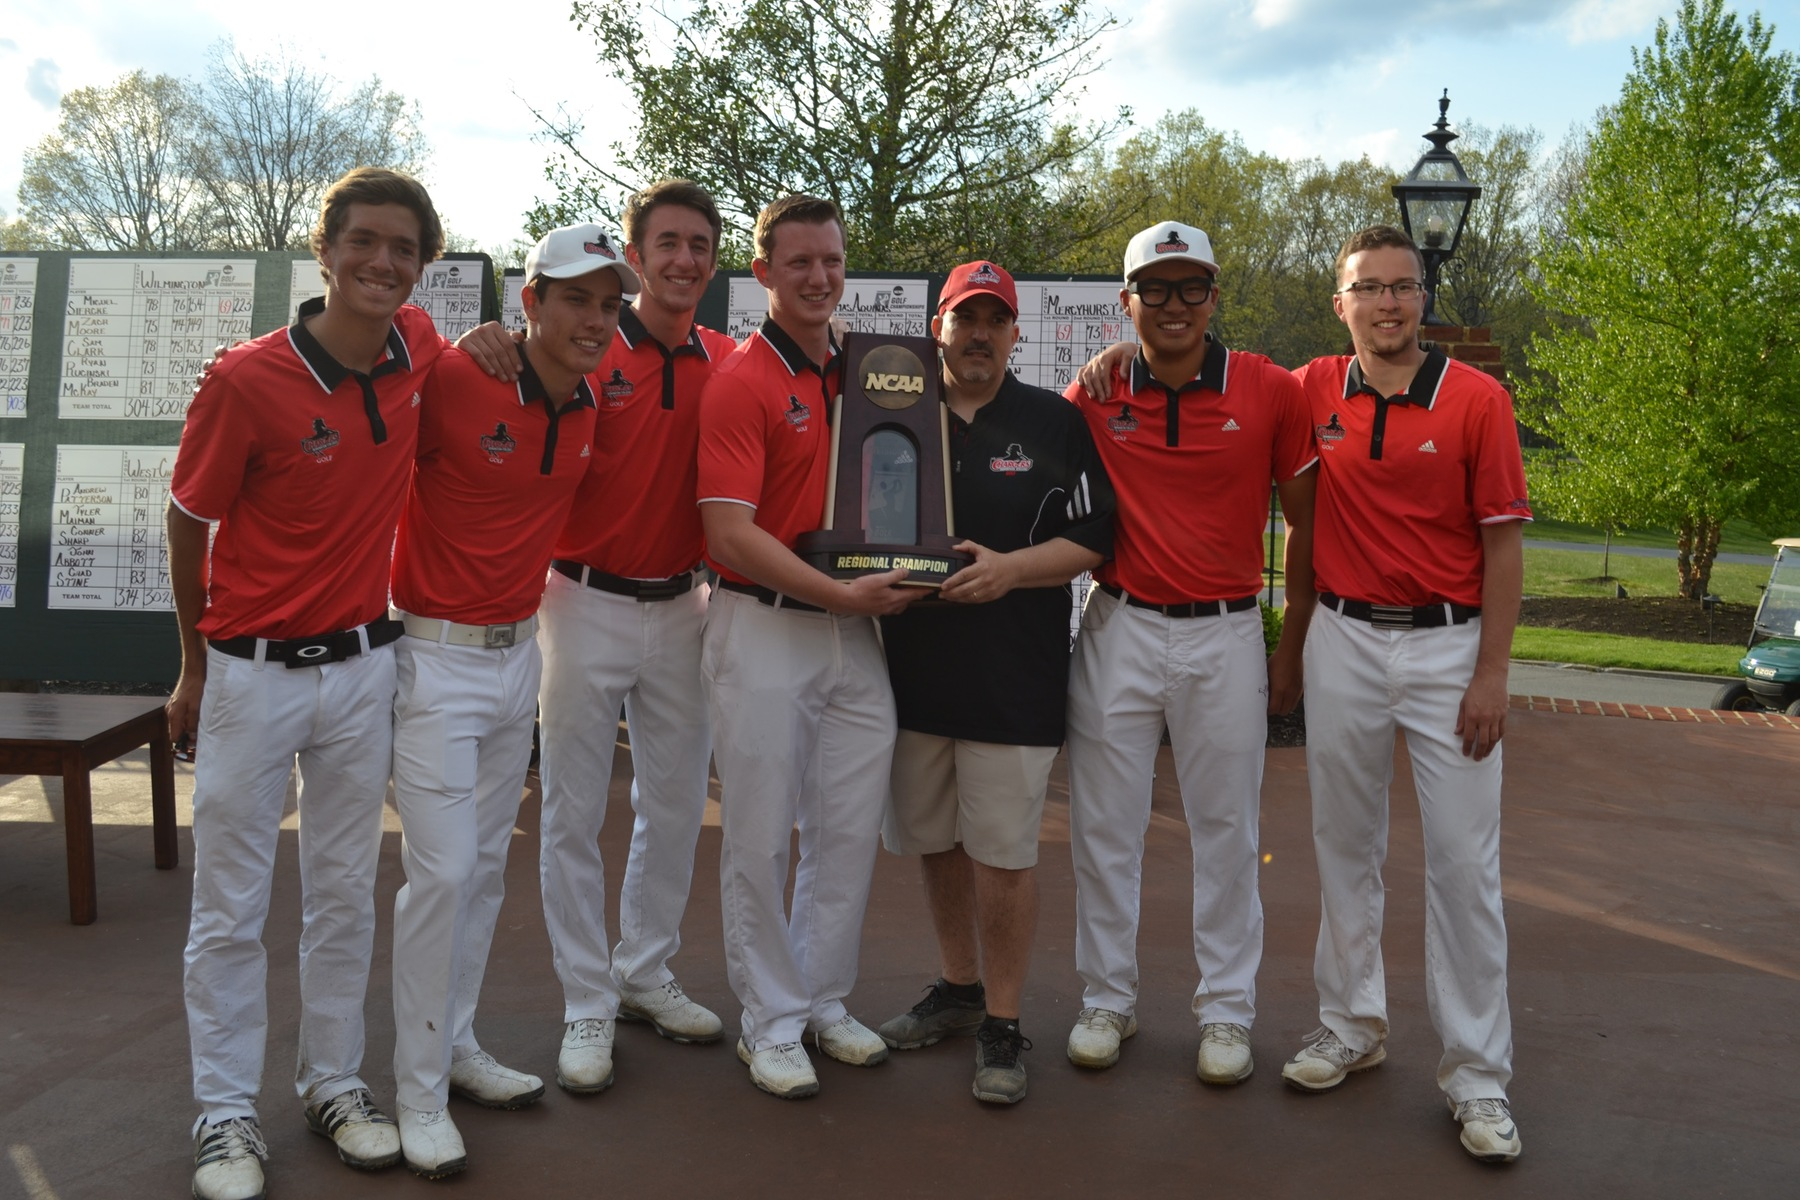 GOLF WINS SCHOOL'S FIRST EVER NCAA REGIONAL CHAMPIONSHIP